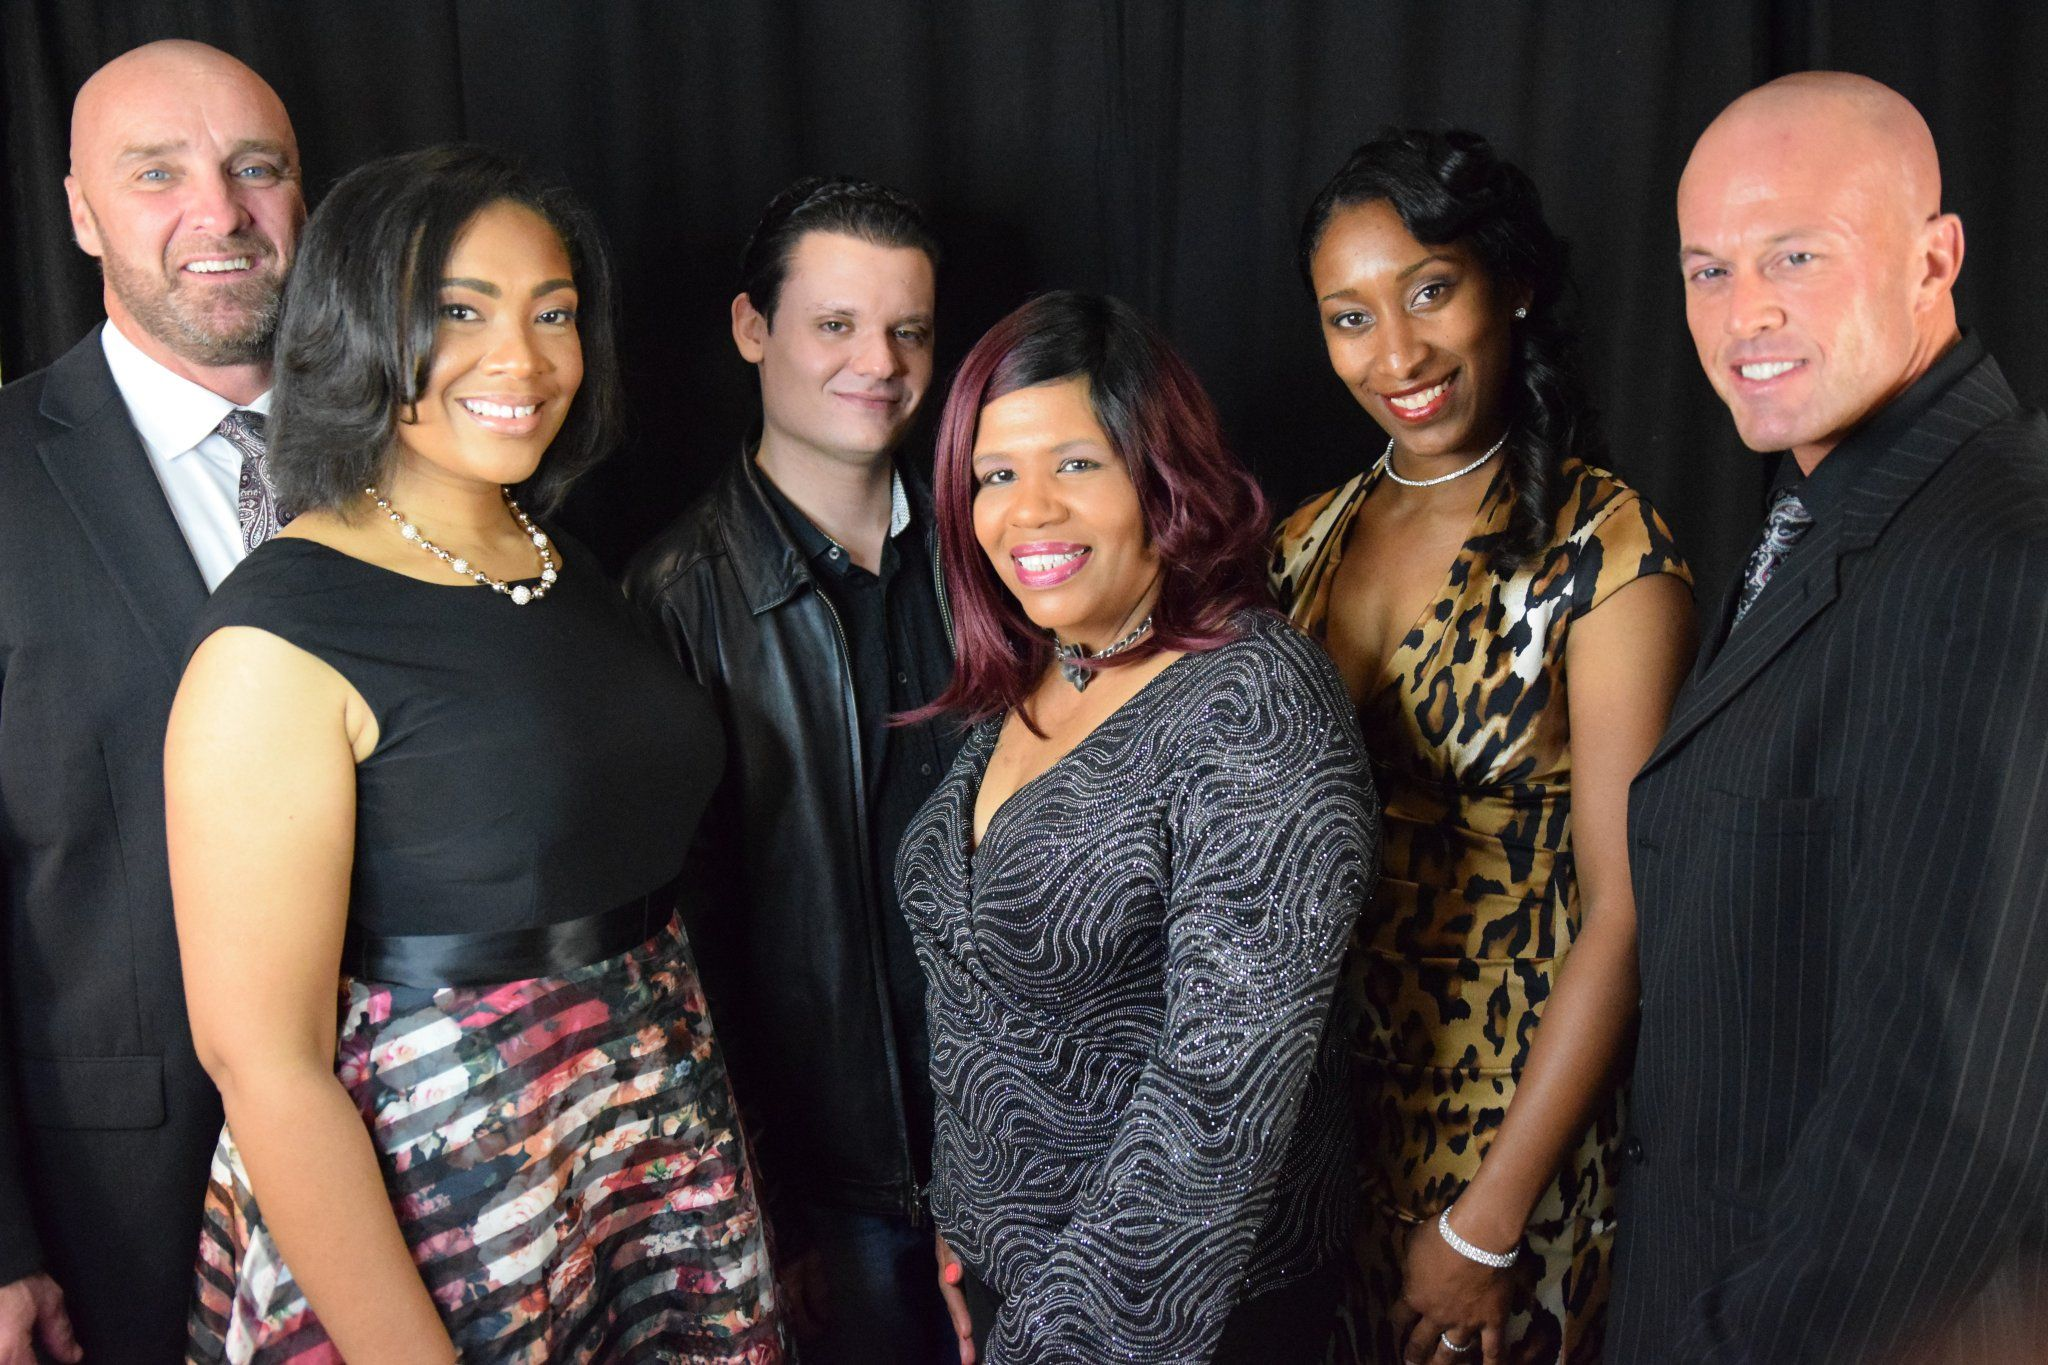 Model & Actor John Quinlan with ASOP Cast via Temple Red Carpet Screening 11-2017 #JohnQuinlan